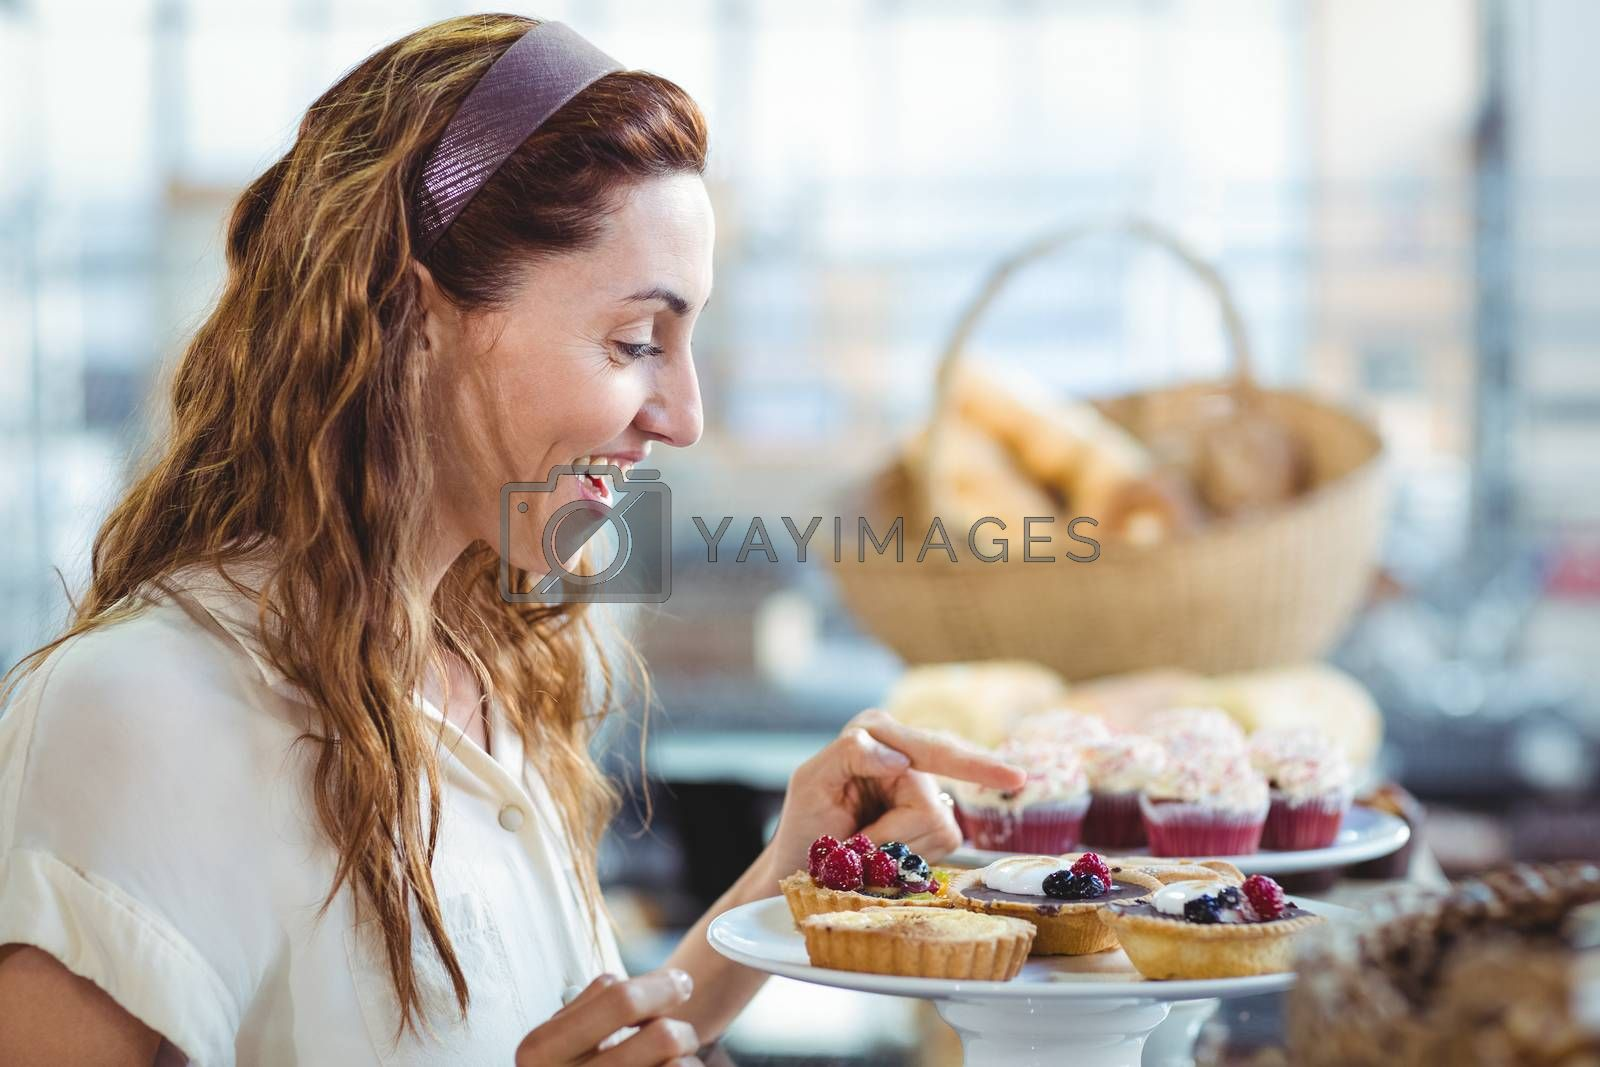 Royalty free image of Astonished pretty woman pointing at cakes by Wavebreakmedia